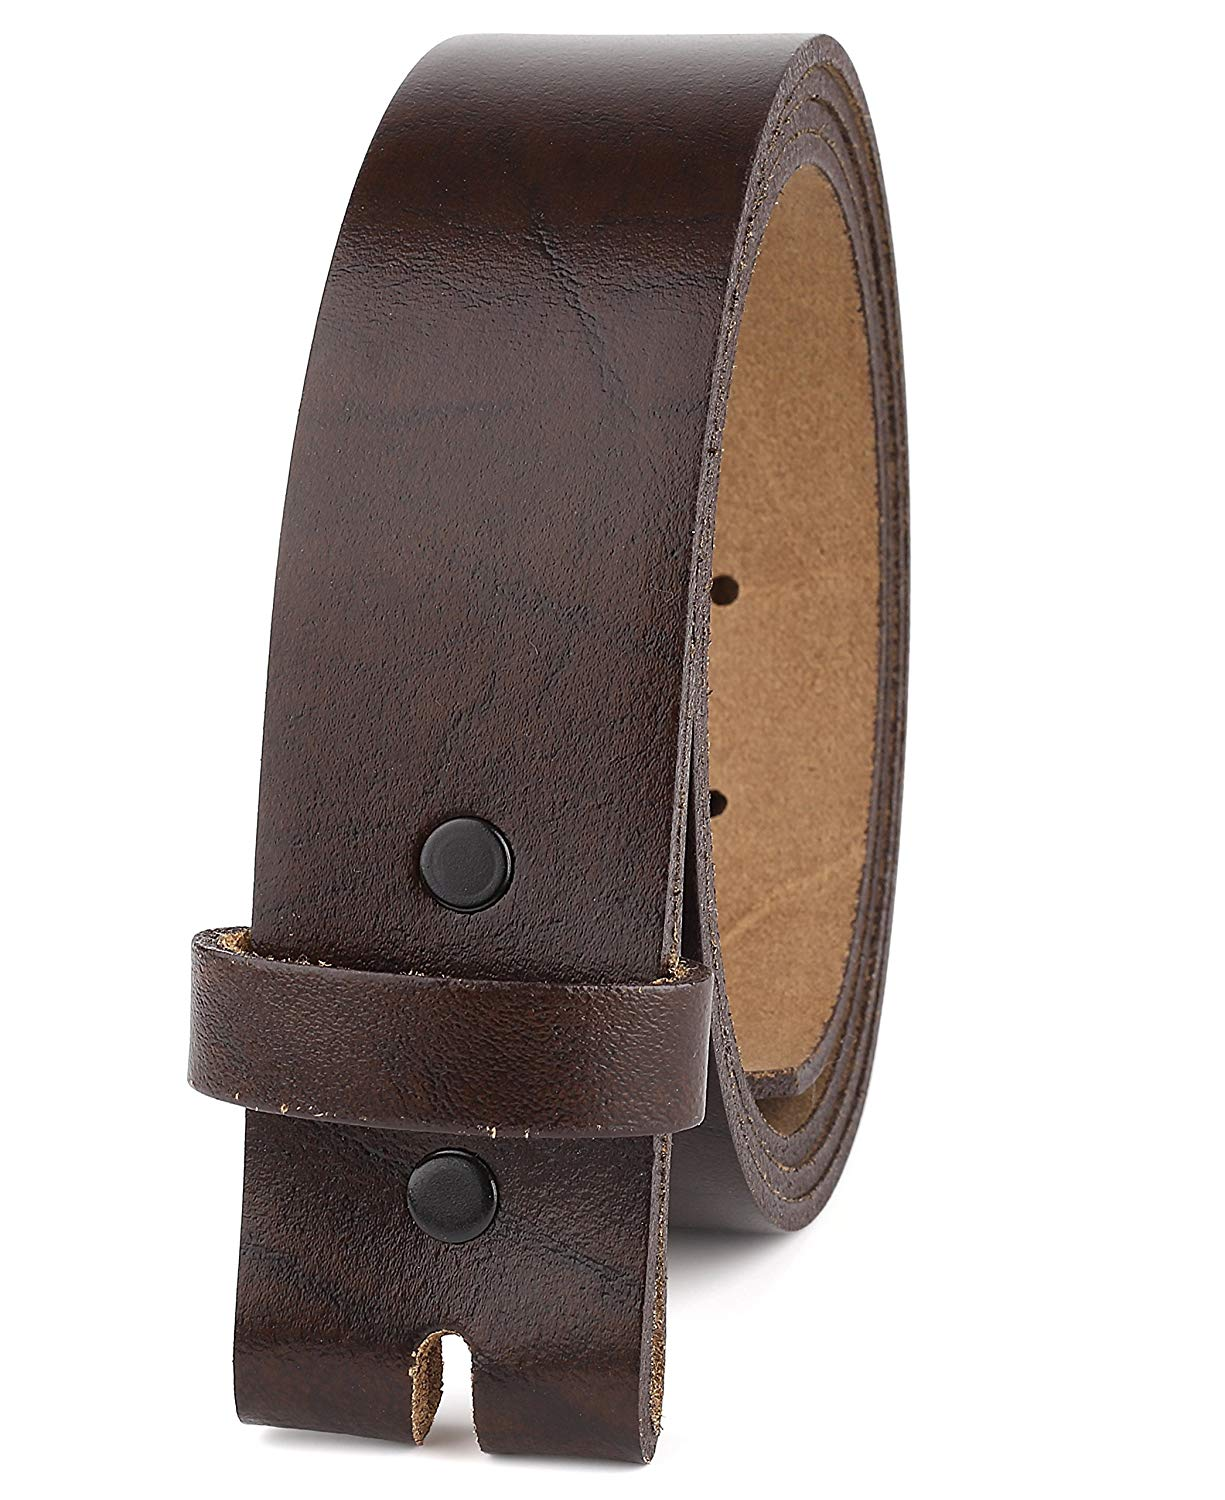 Made in USA/… Belt for Buckles 100/% Top Grain One Piece Leather,Uniform,1.5 wide